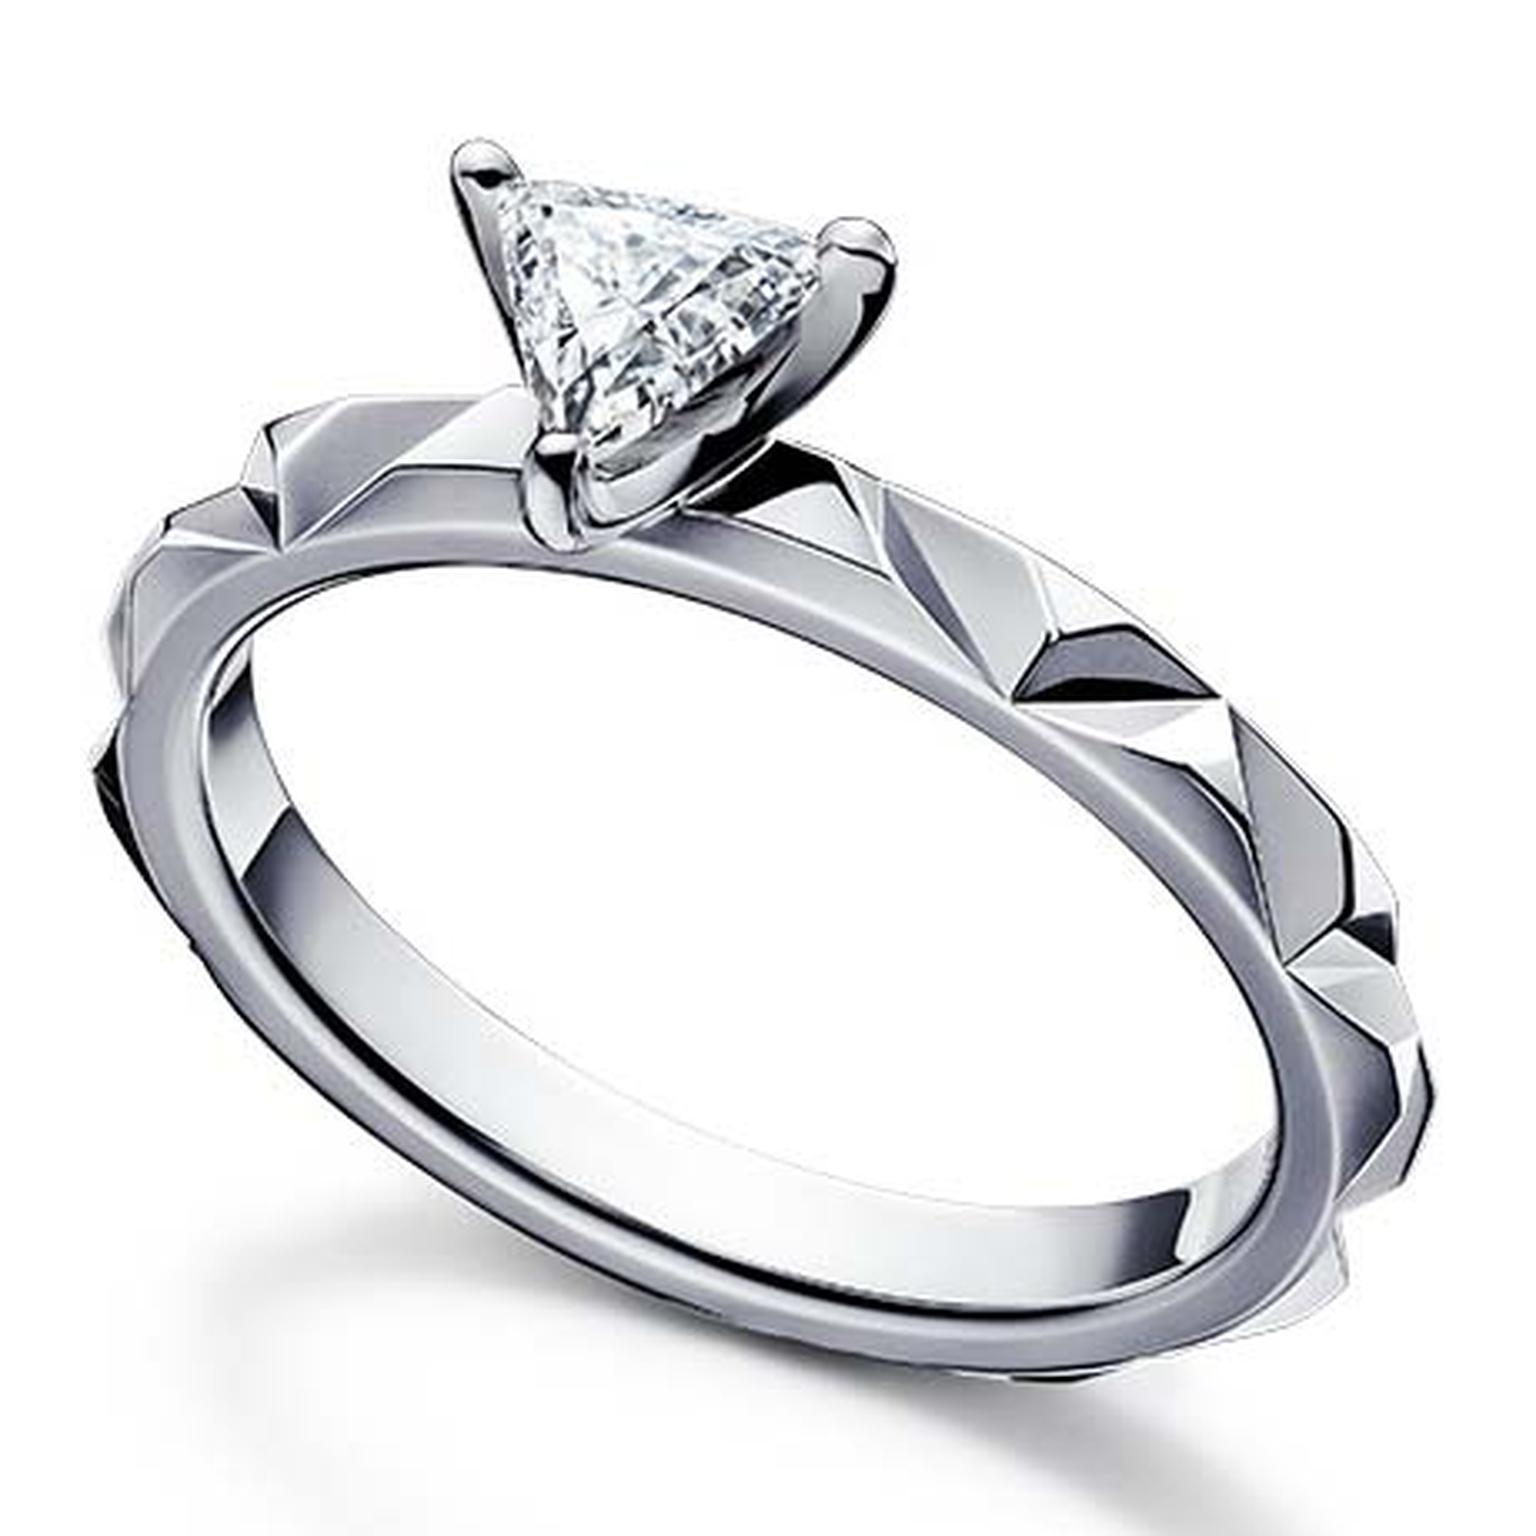 Tasaki Valle engagement ring